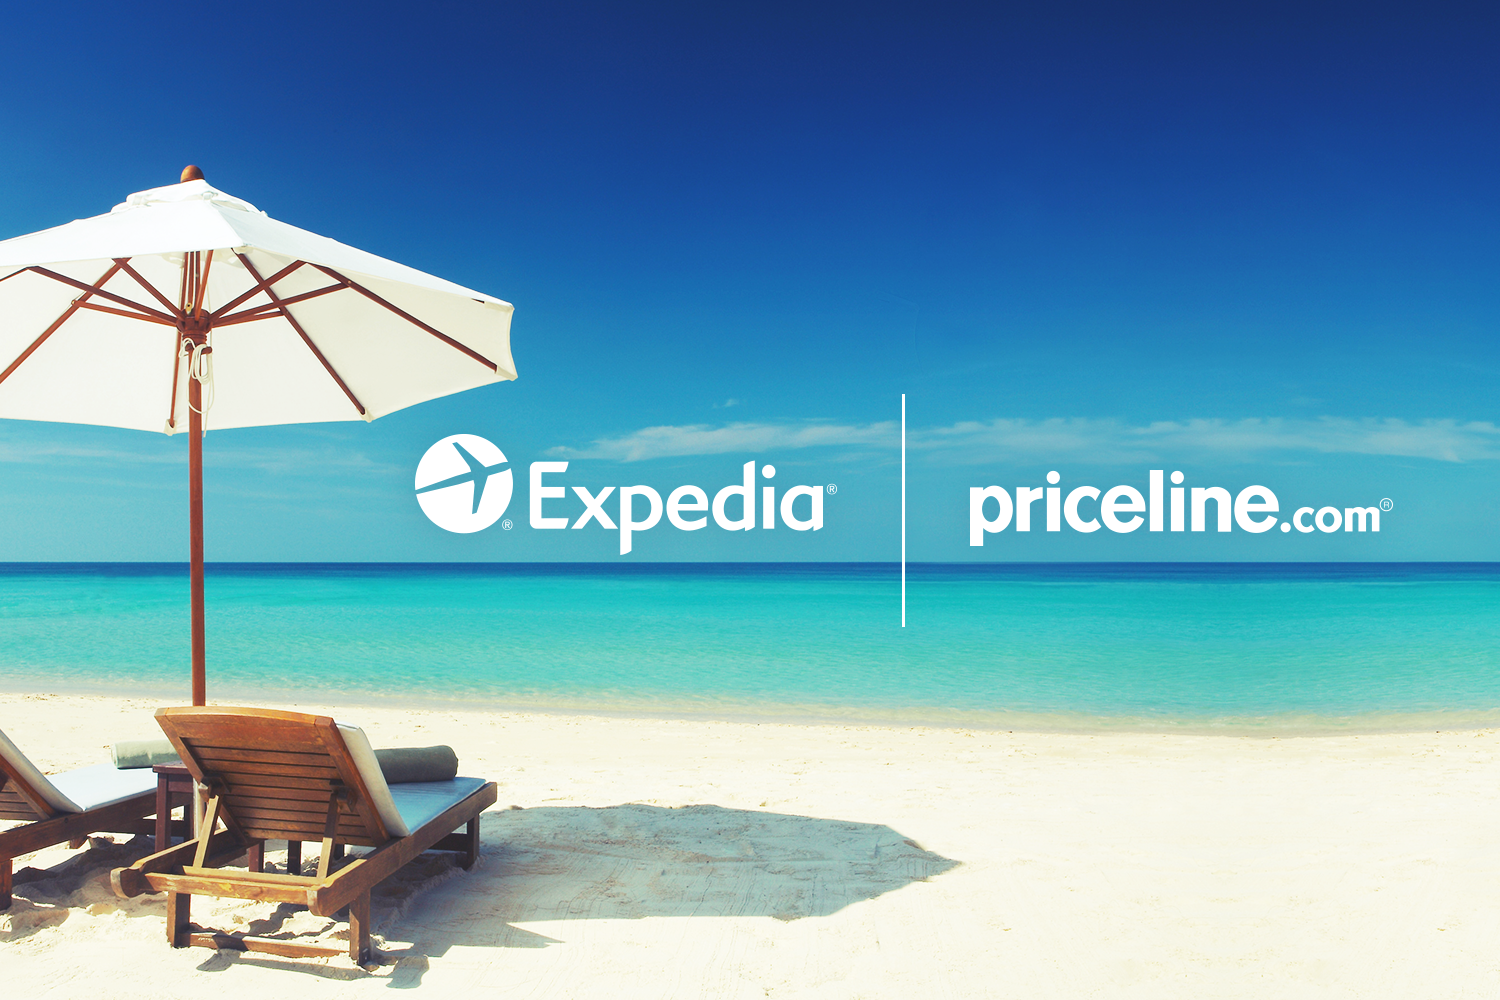 Expedia vs  Priceline: Whose Marketing Stands Out to Travelers